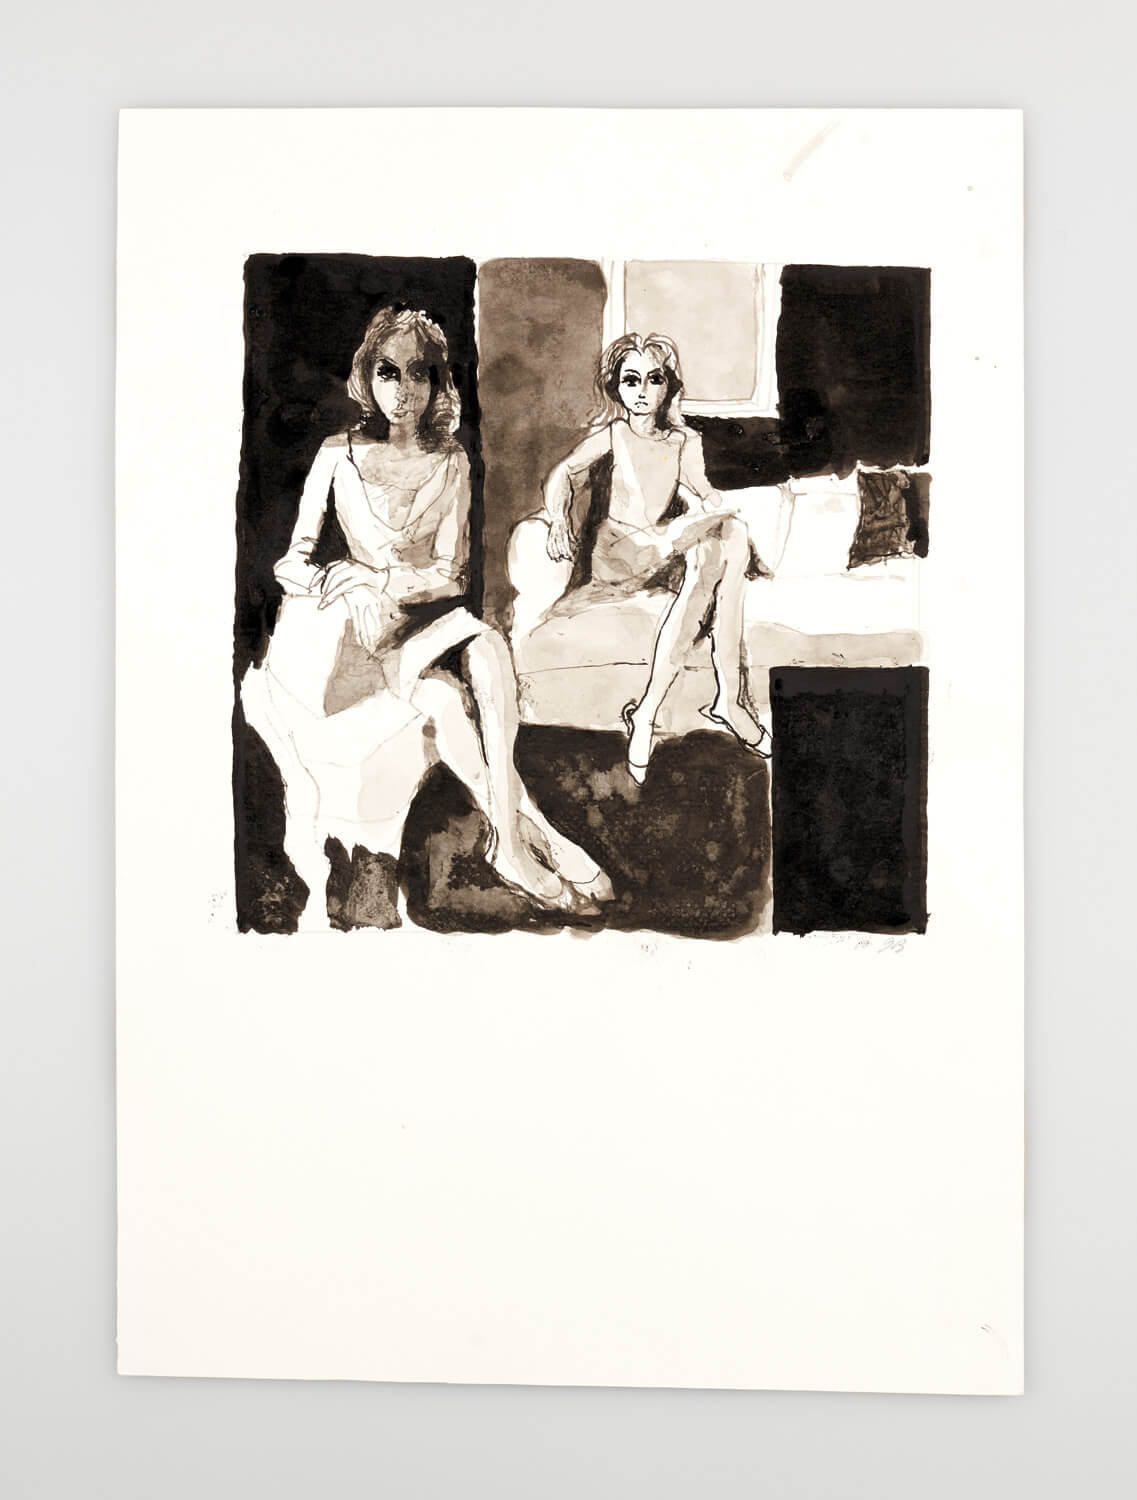 JB112 - Two Mannequins - 2000 - 26 x 27 cm - Indian ink and wash on paper